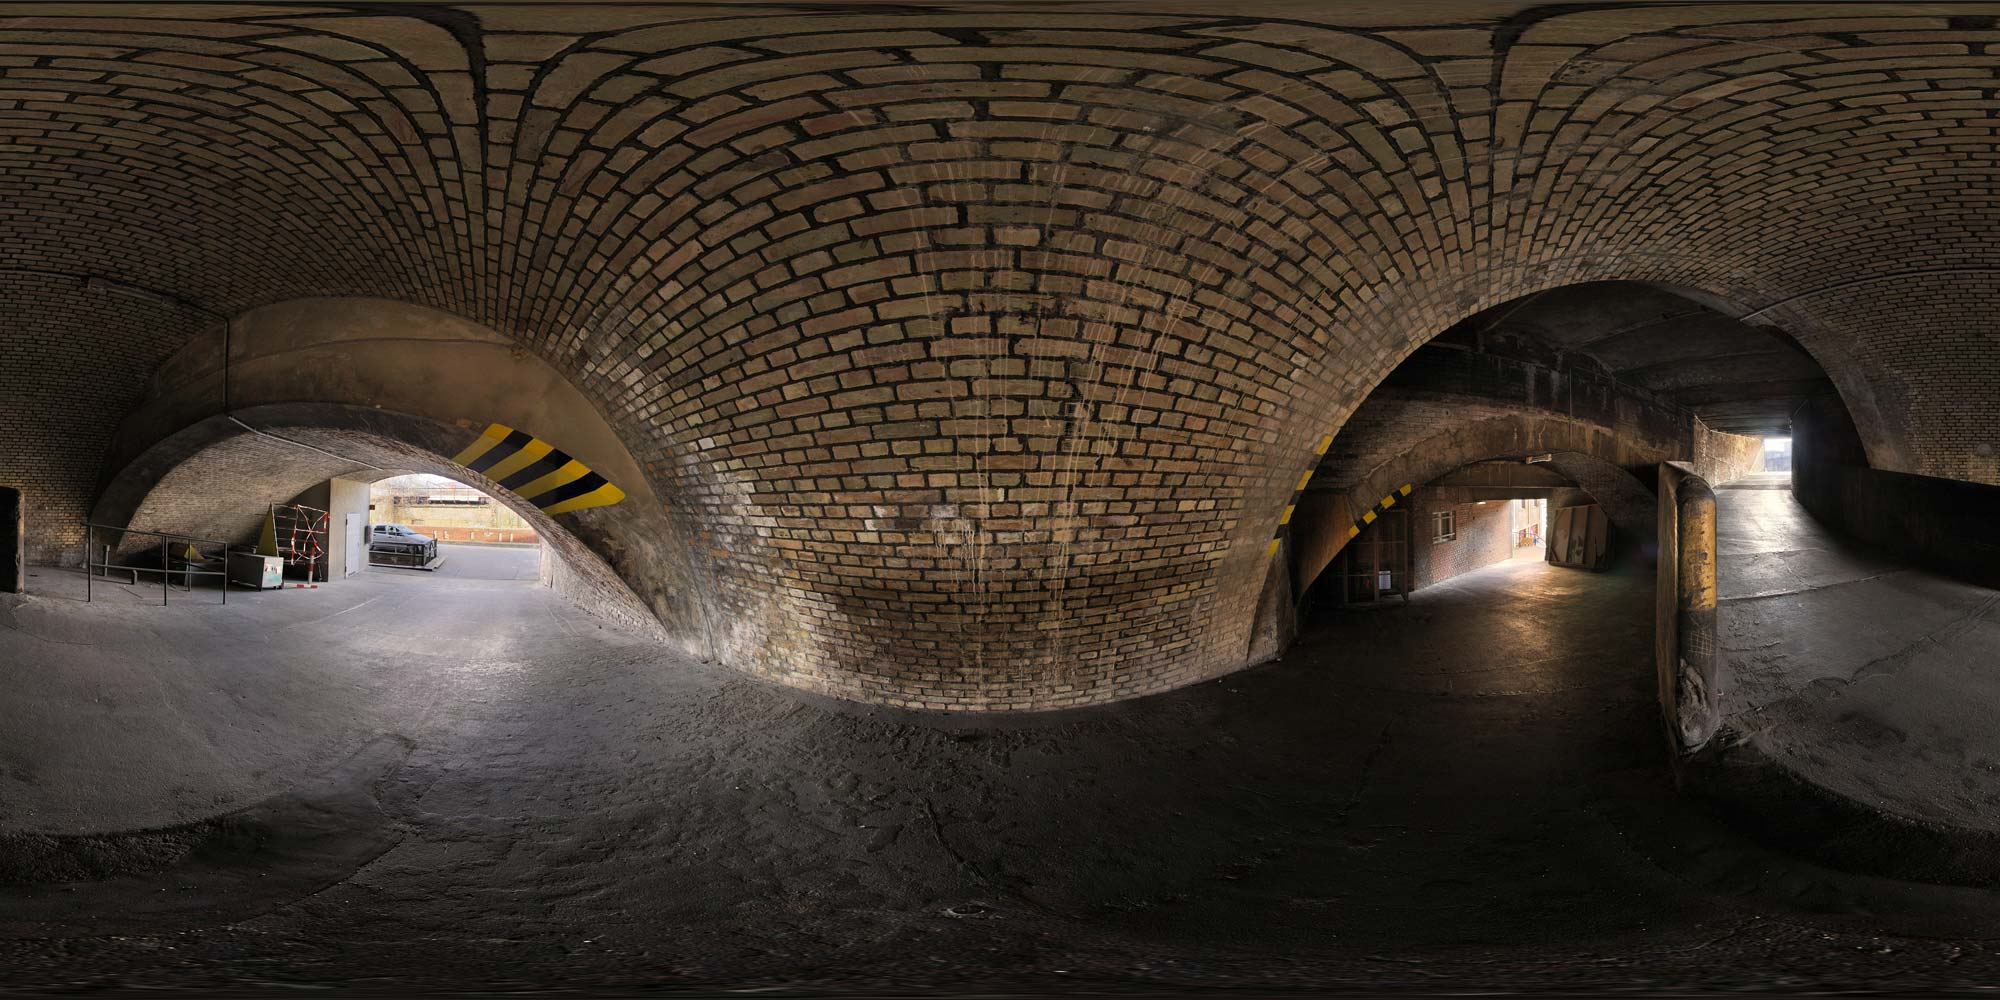 Panorama Berlin Gleisdreieck - Tunnel